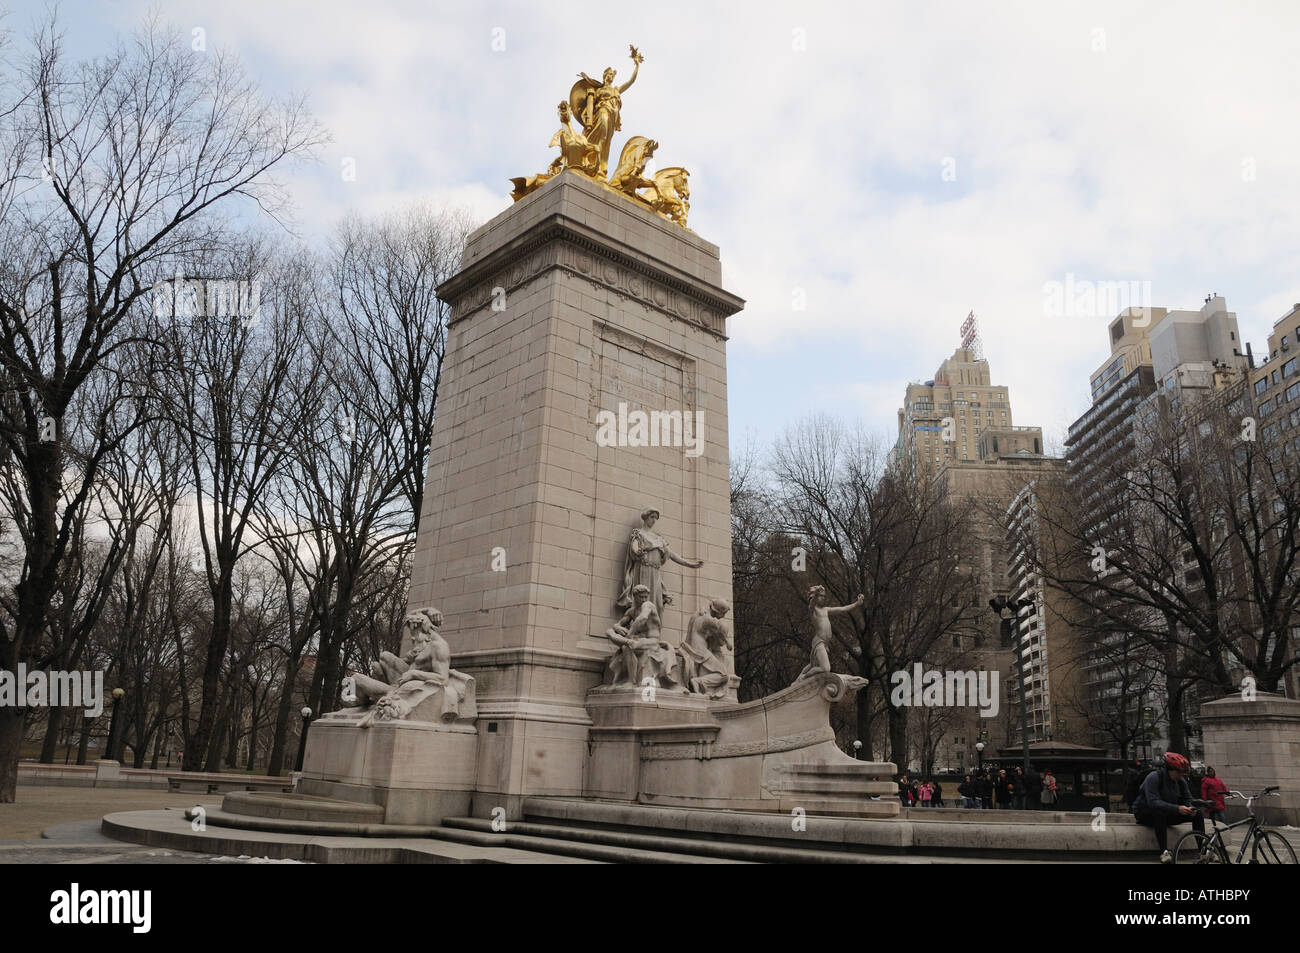 On the southwest corner of Manhattan's Central Park, a monument recalls the battleship USS Maine that sank in - Stock Image